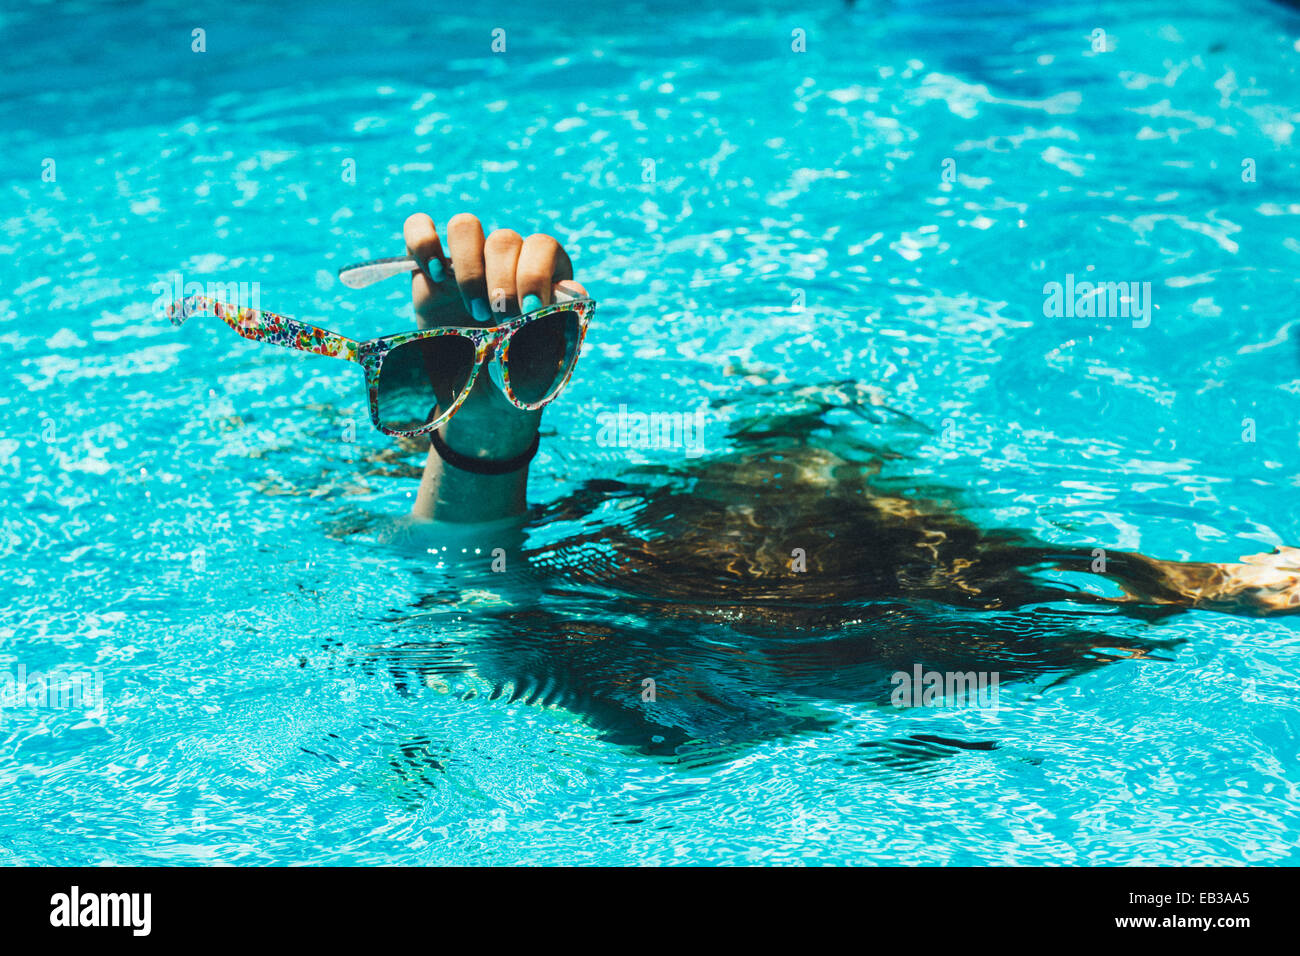 Hand with sunglasses sticking out of water - Stock Image